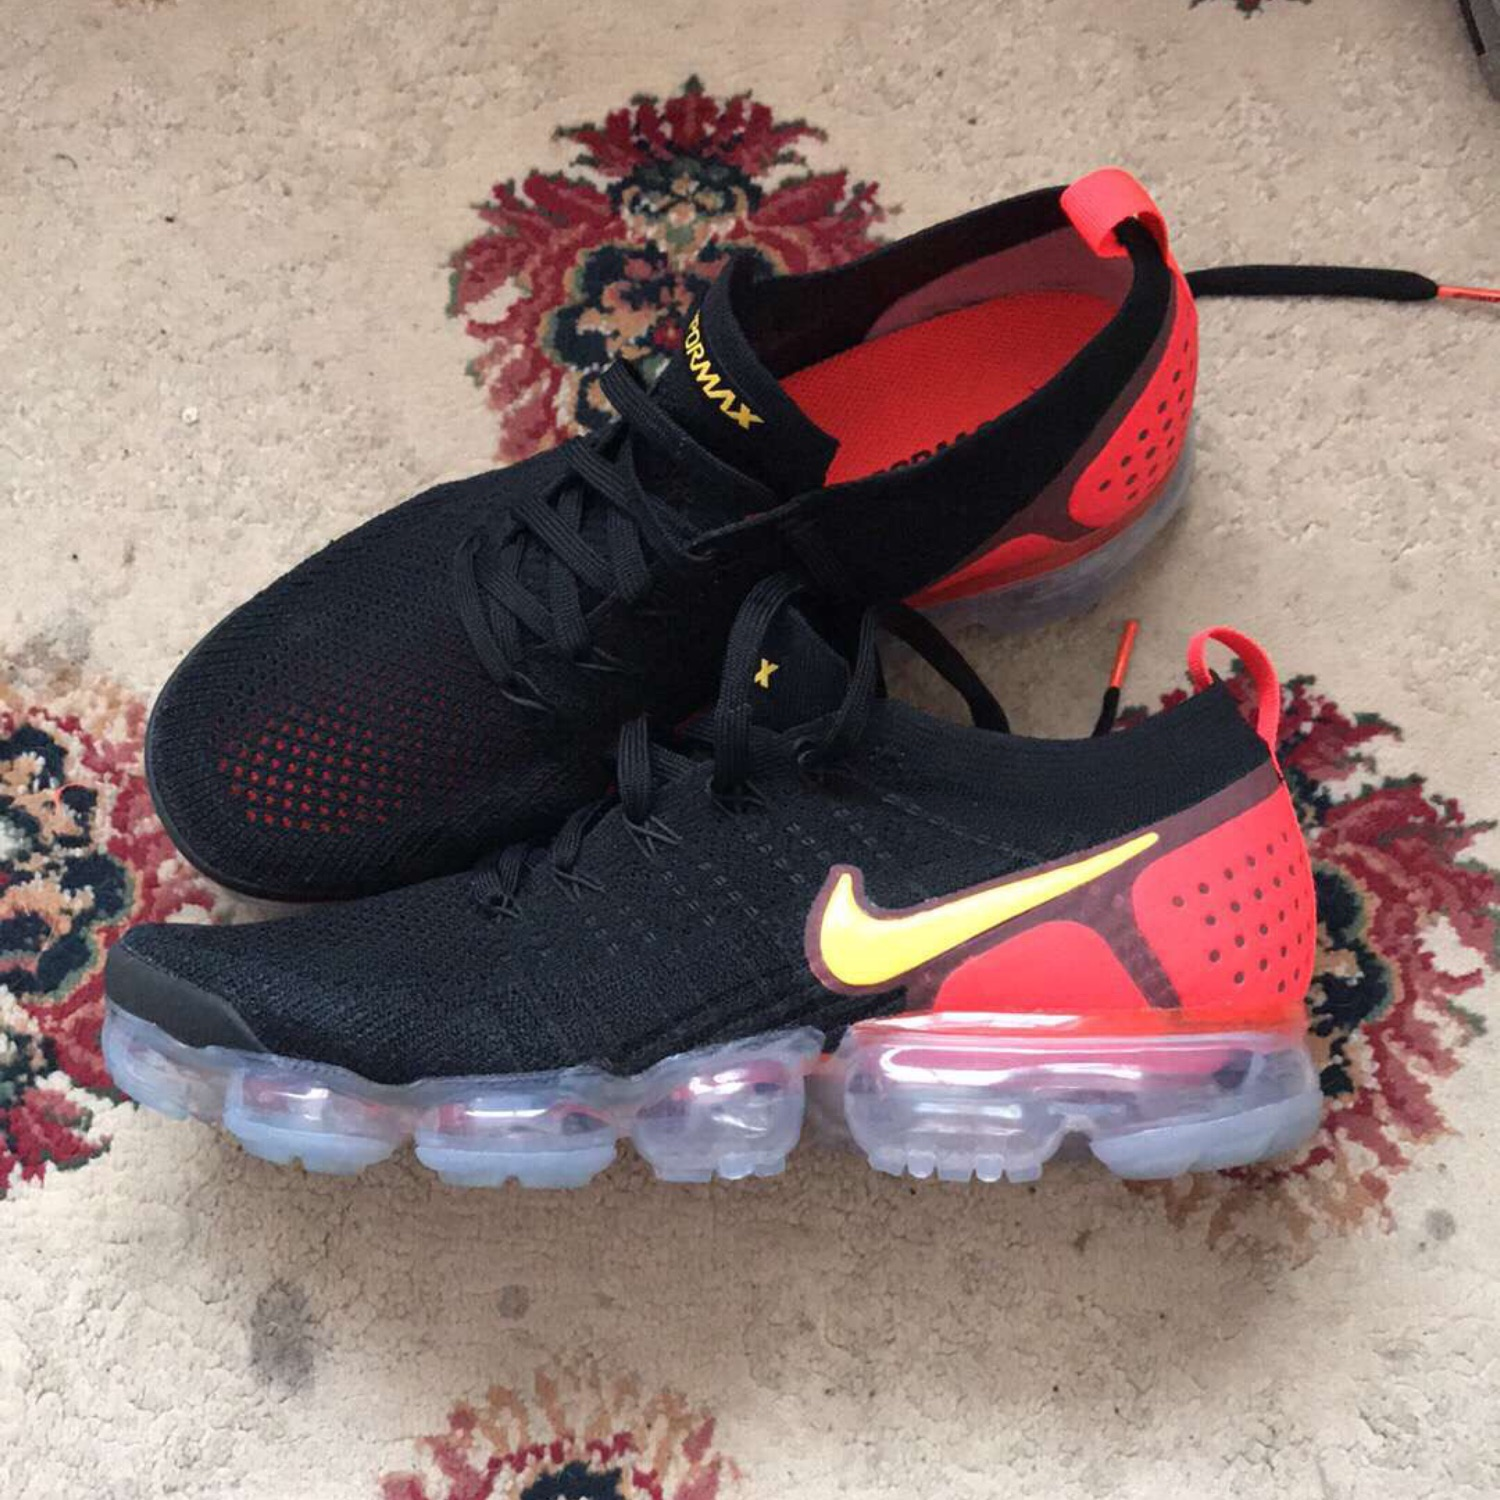 Nike Air VaporMax Flyknit Men's Shoe